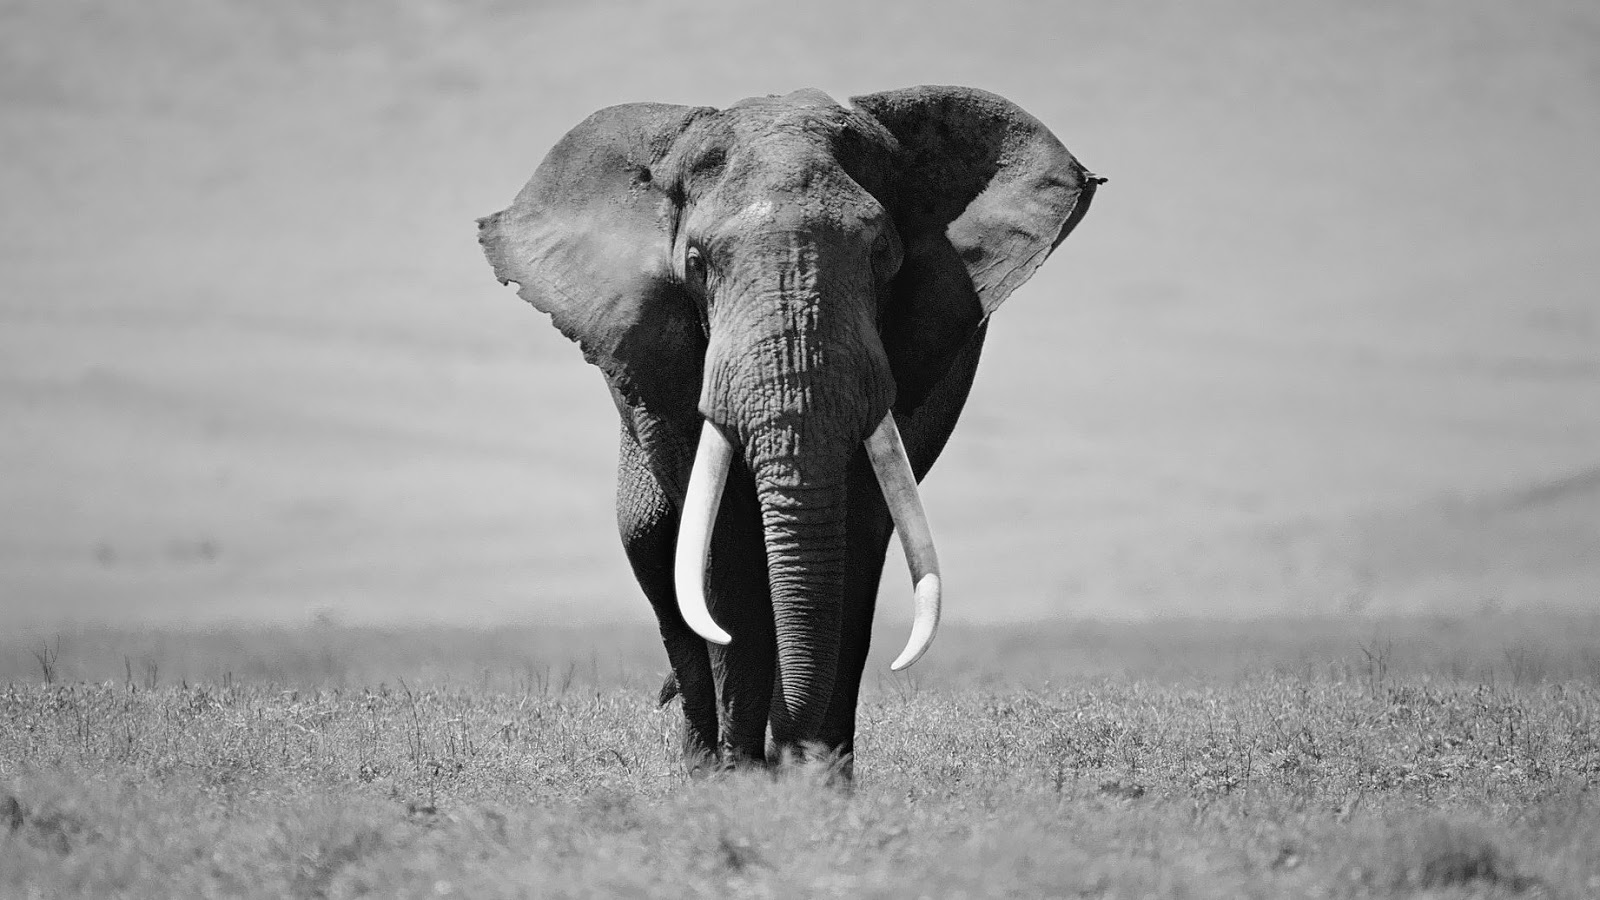 black-and-white-elephant-wallpaper-hd-animal-background-photo – save